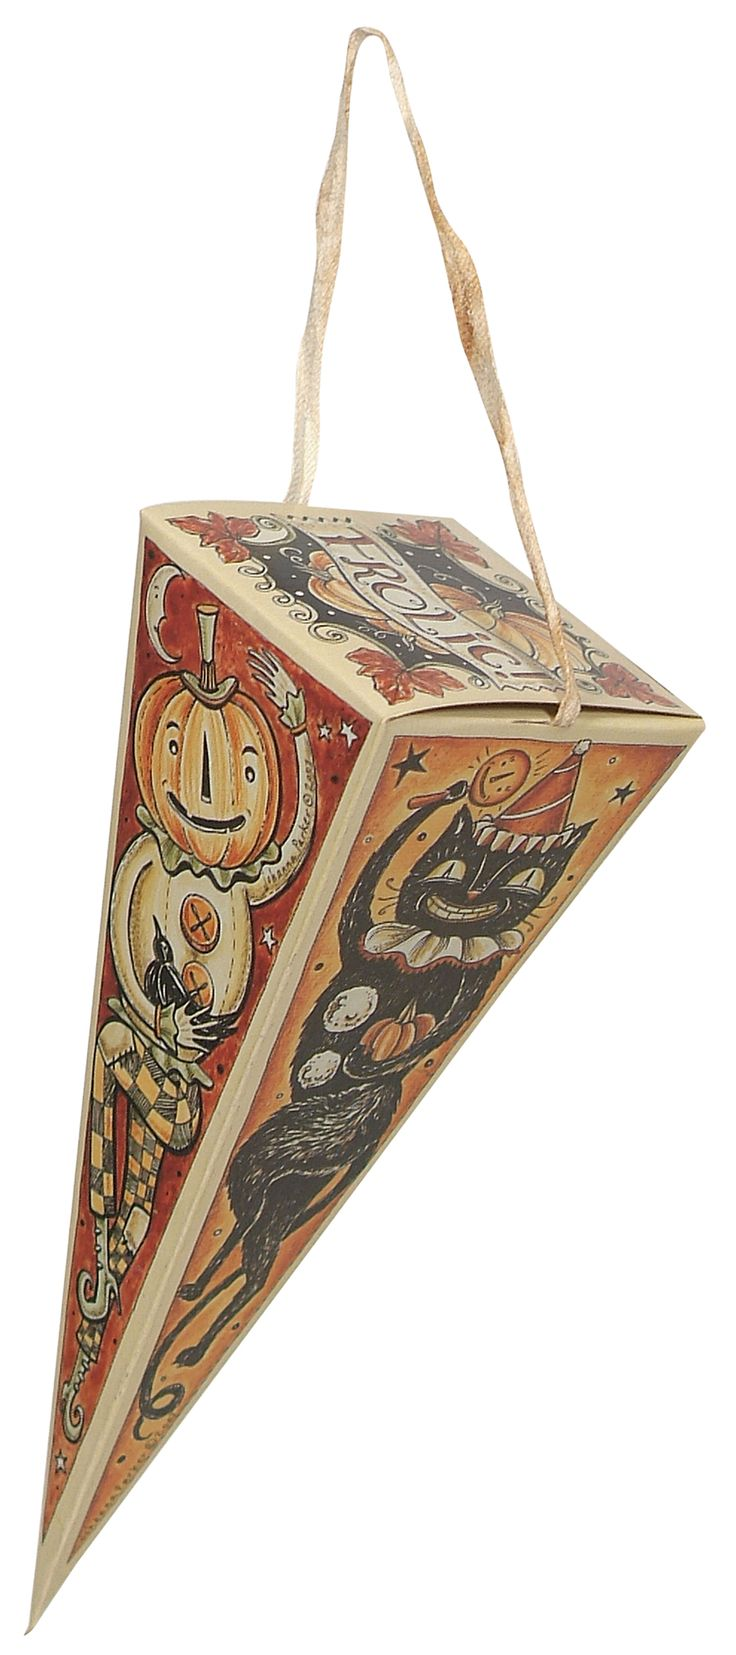 Vintage halloween window decorations - The Vintage Halloween Store Frighteningly Fabulous Favors Loot Containers